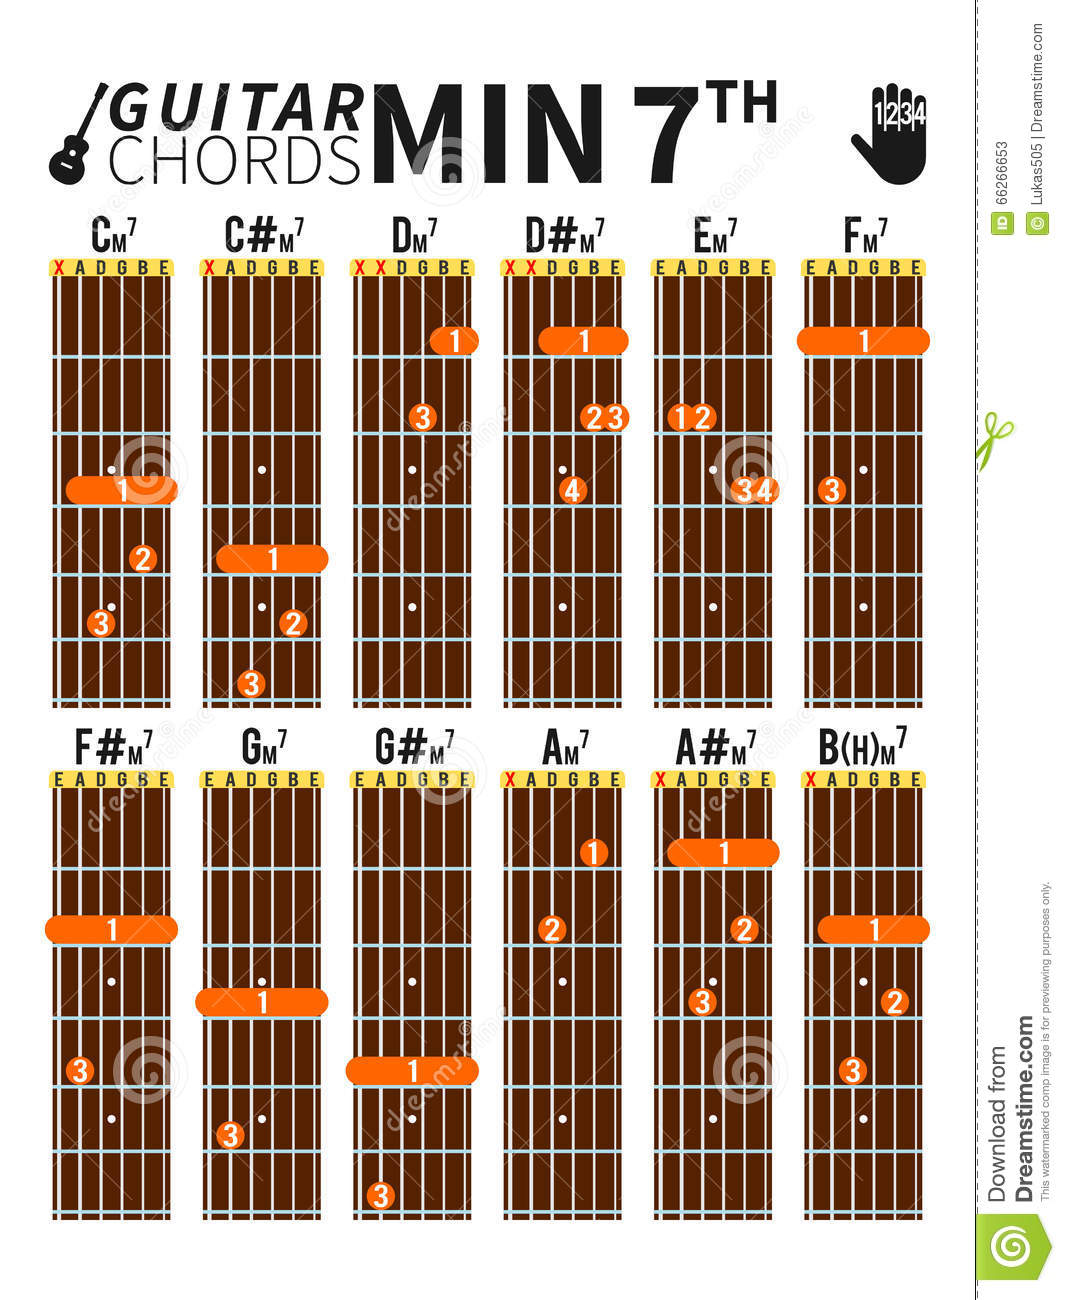 Minor Seventh Chords Chart For Guitar With Fingers Position